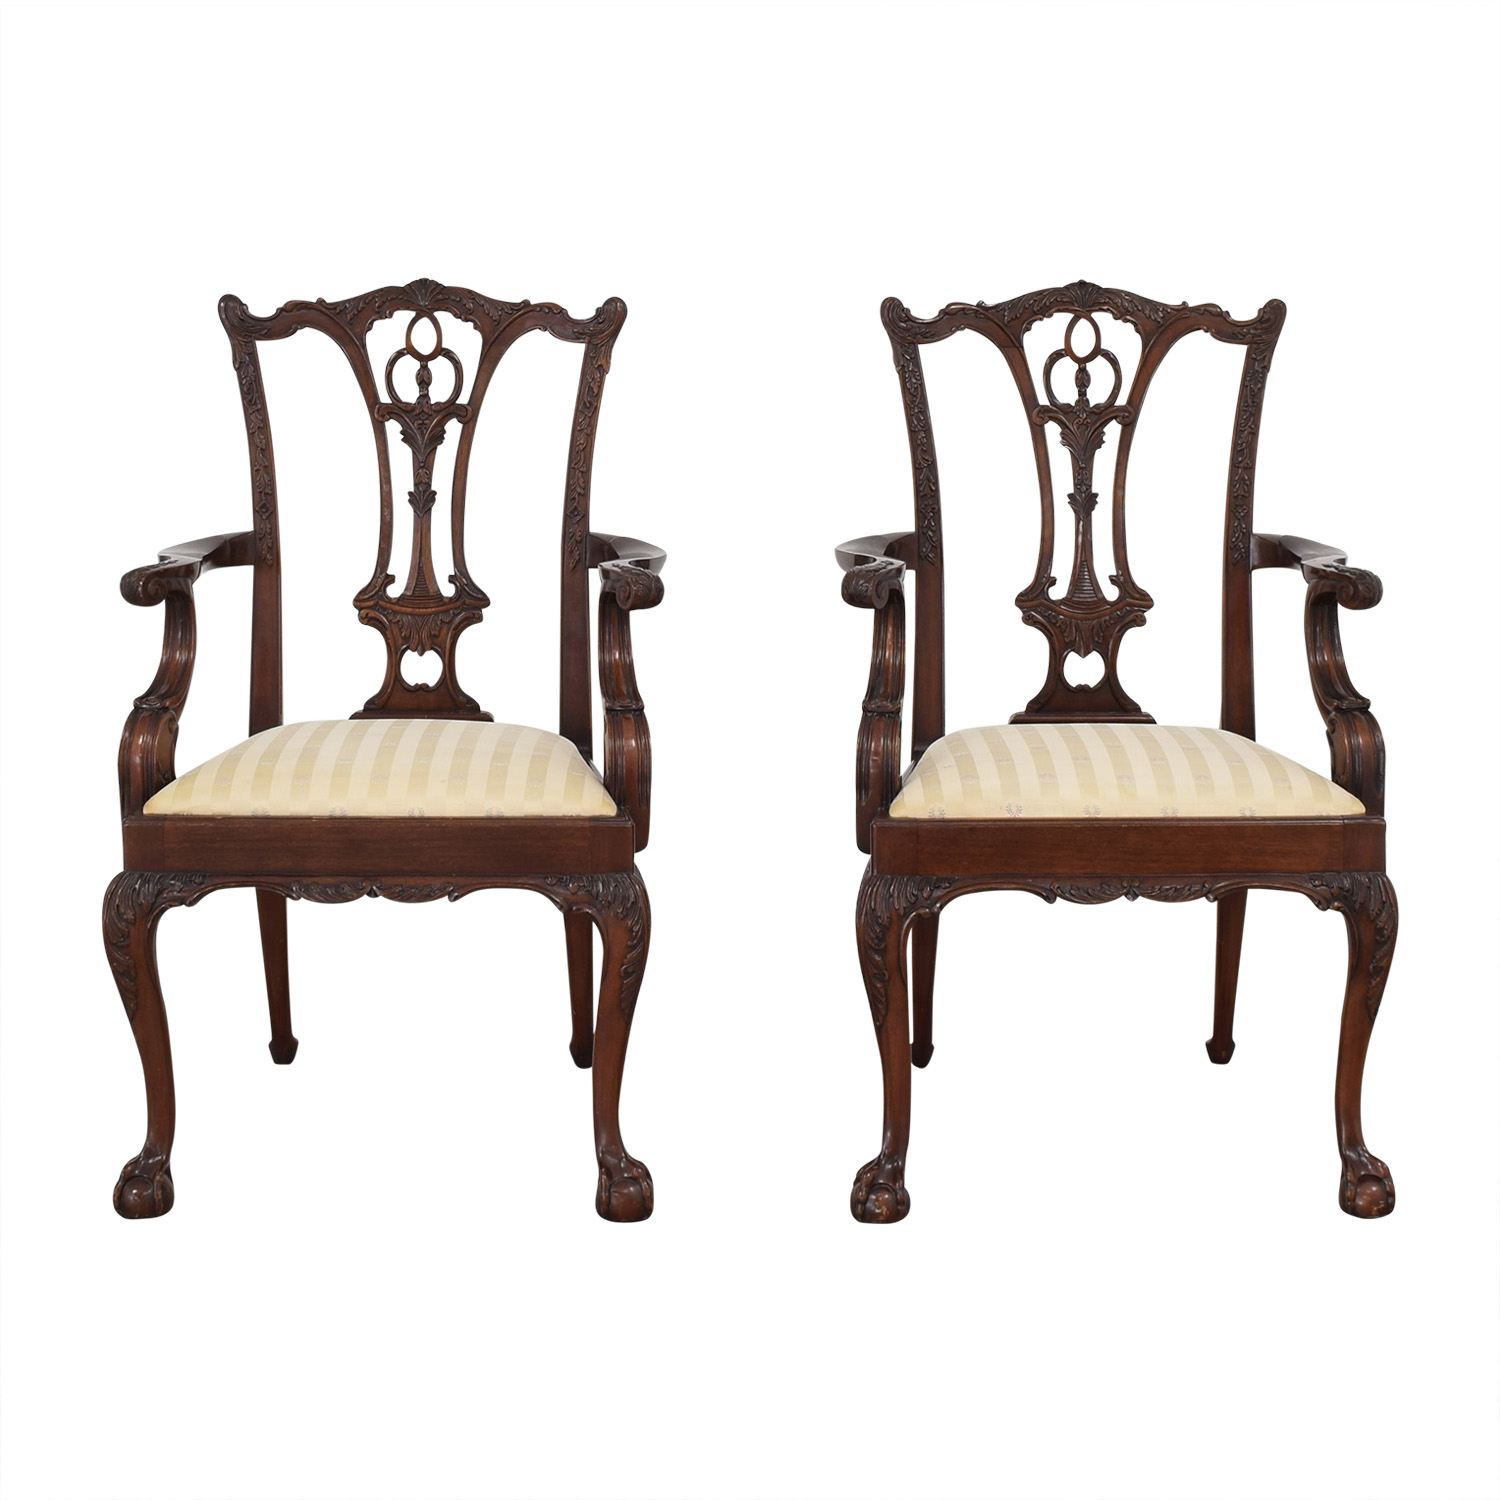 Macy's Hickory Furniture Upholstered Dining Chairs brown & beige